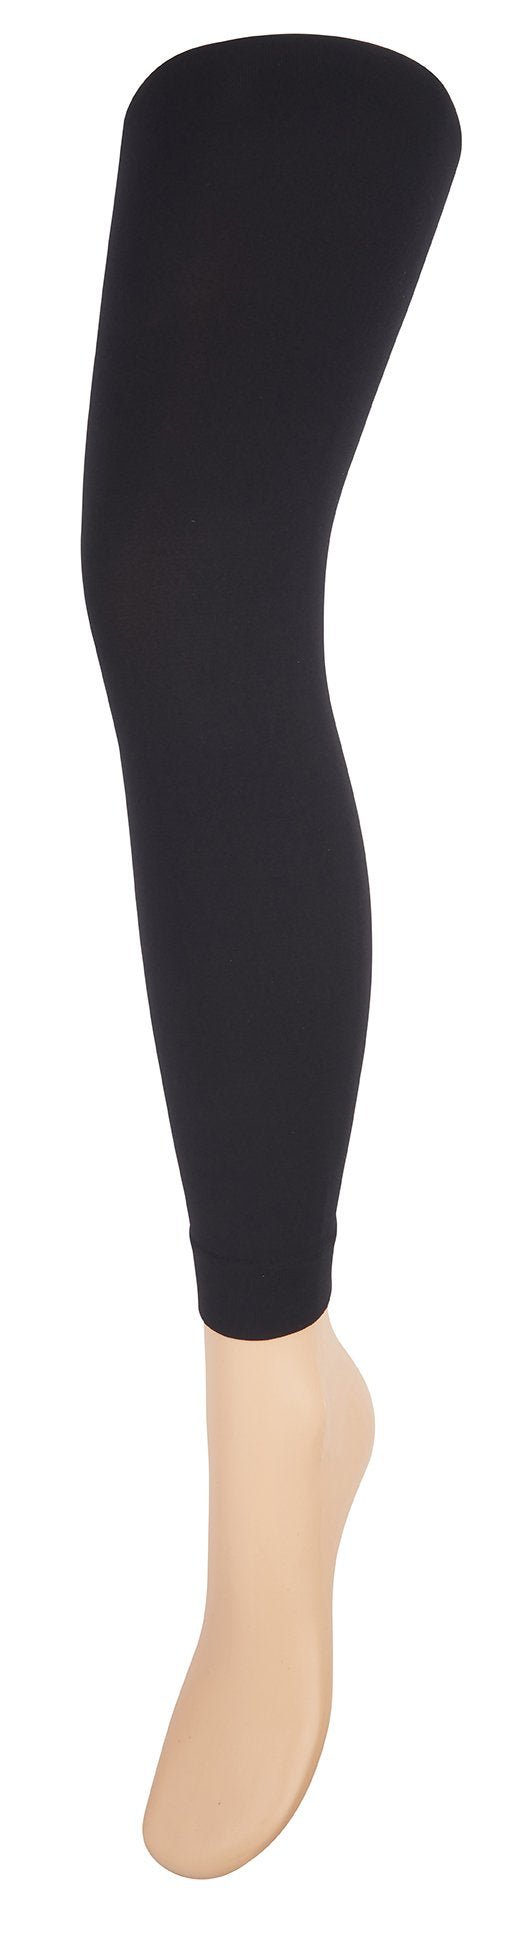 ELLE 120 Denier Opaque Leggings